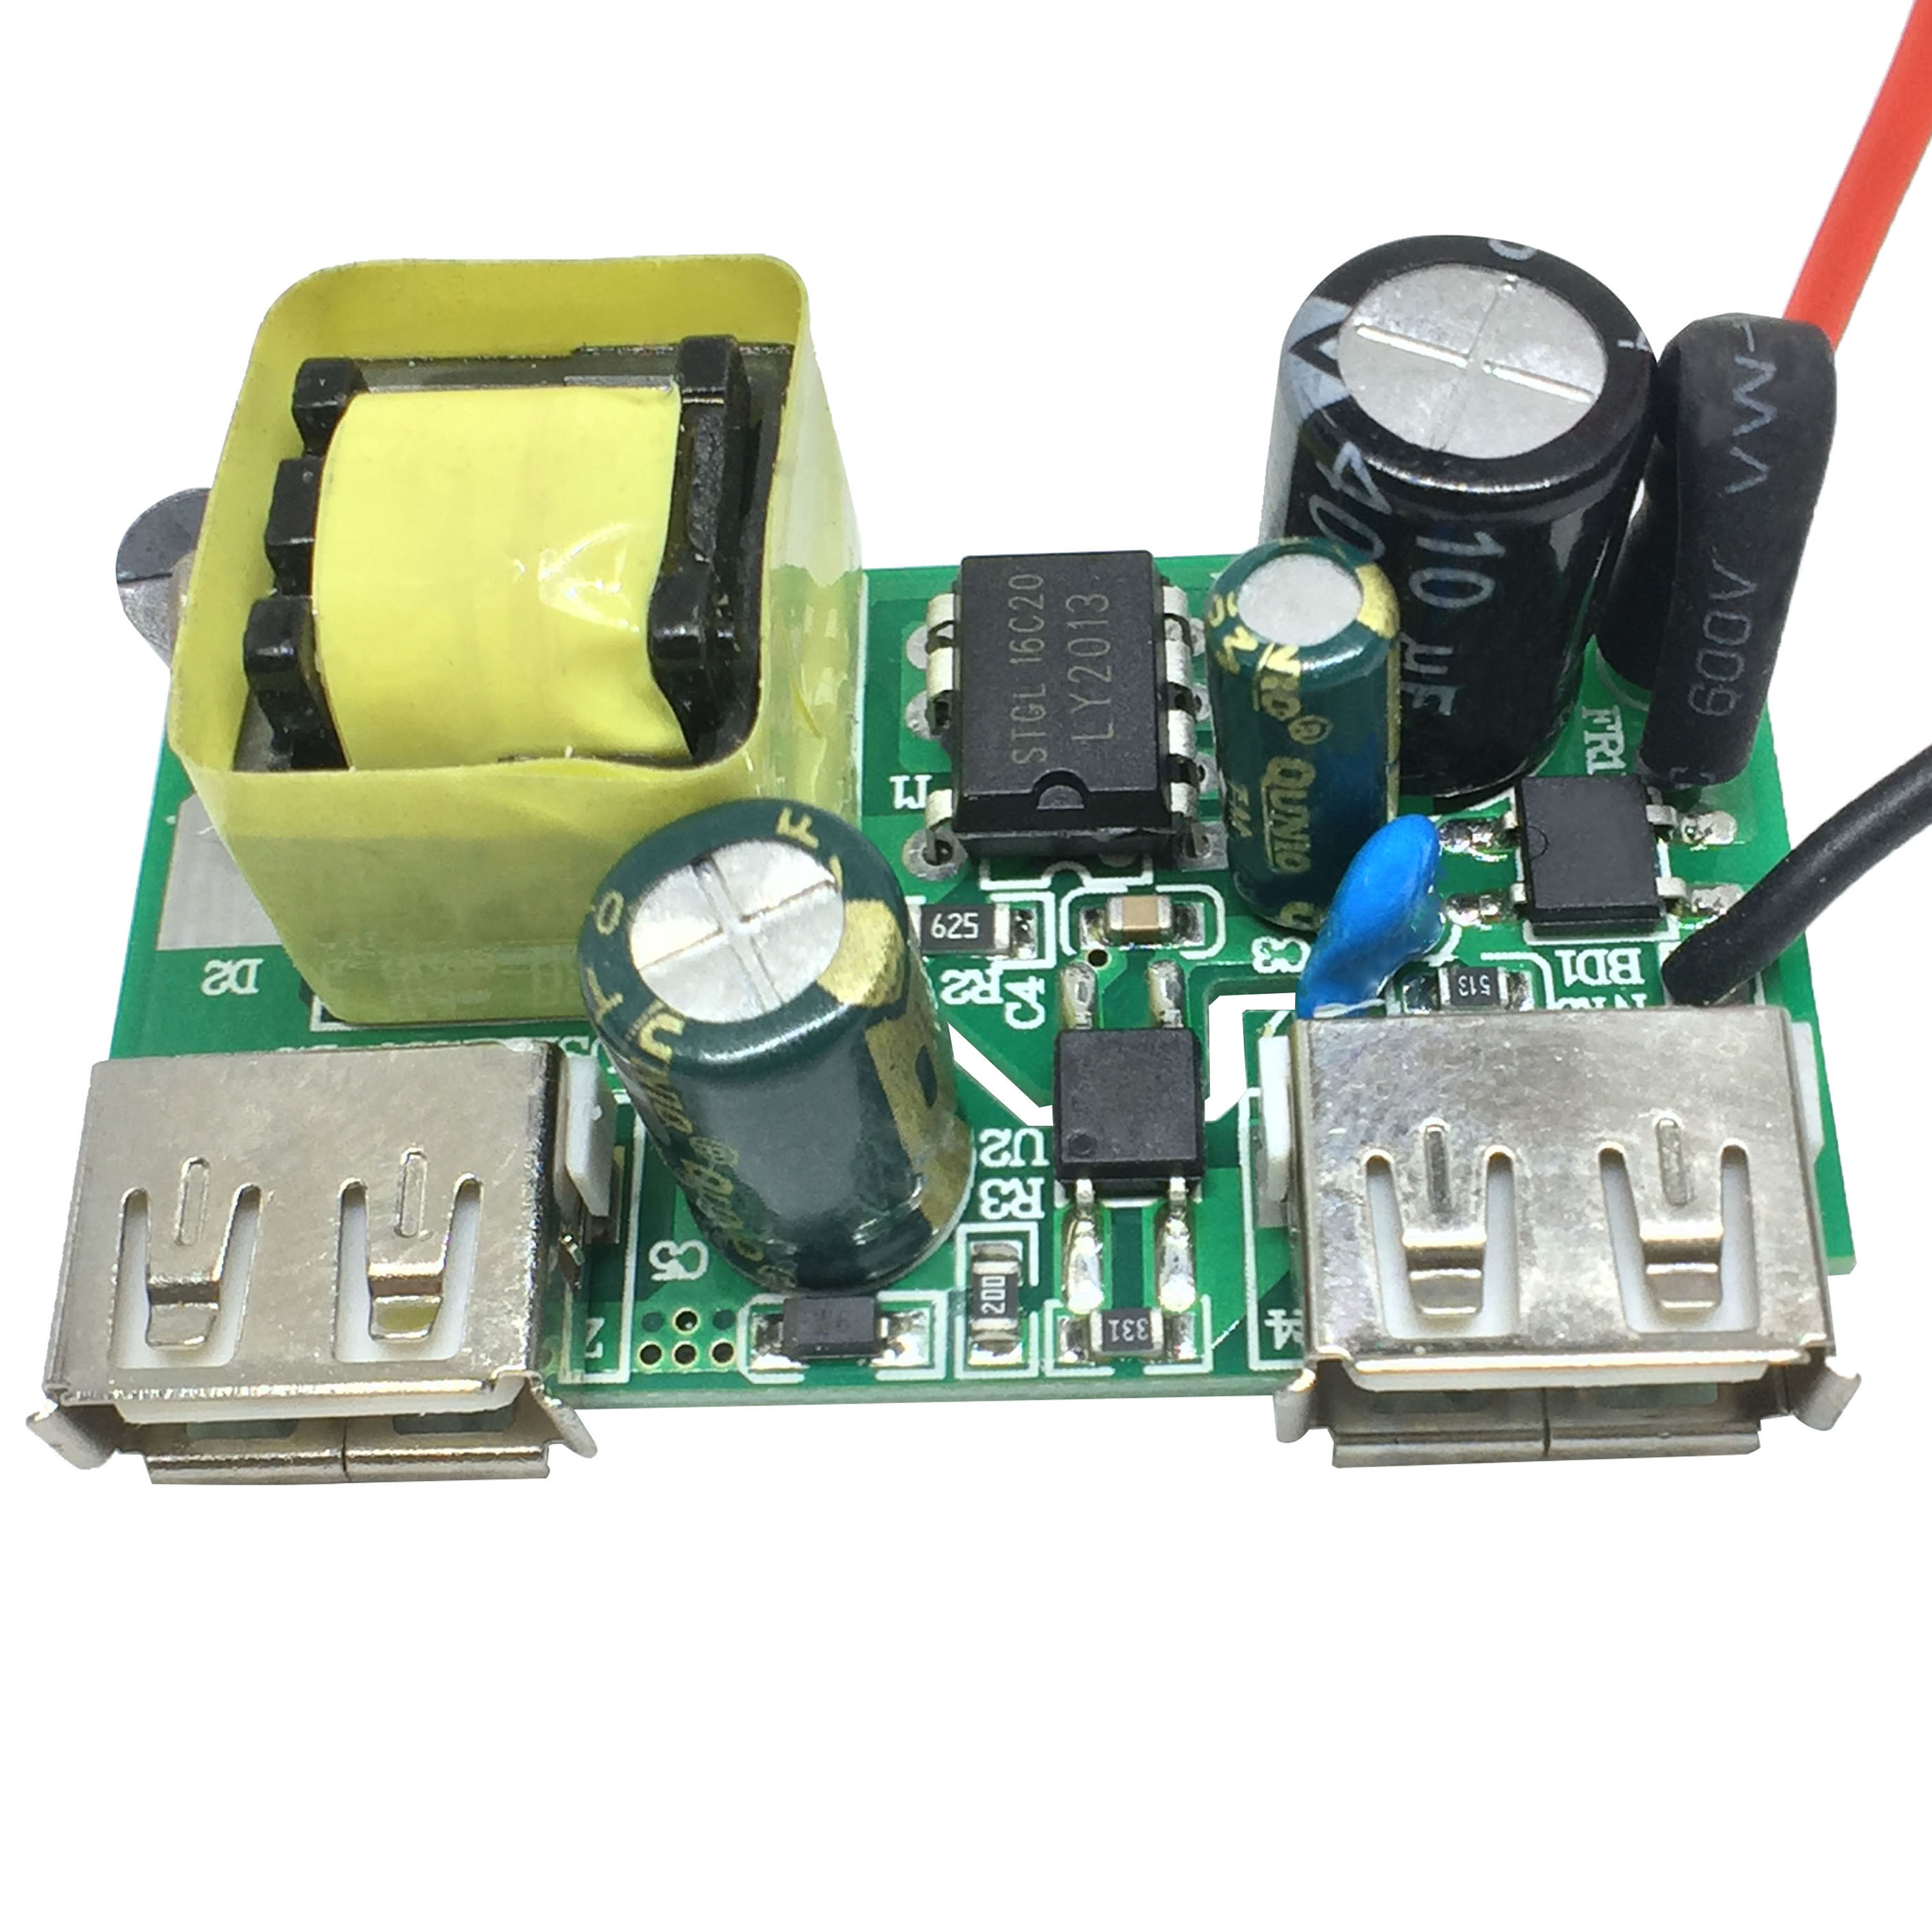 <strong>A001</strong> Electronics usb wall charger pcba Assembly,Customized PCBA/pcb design services